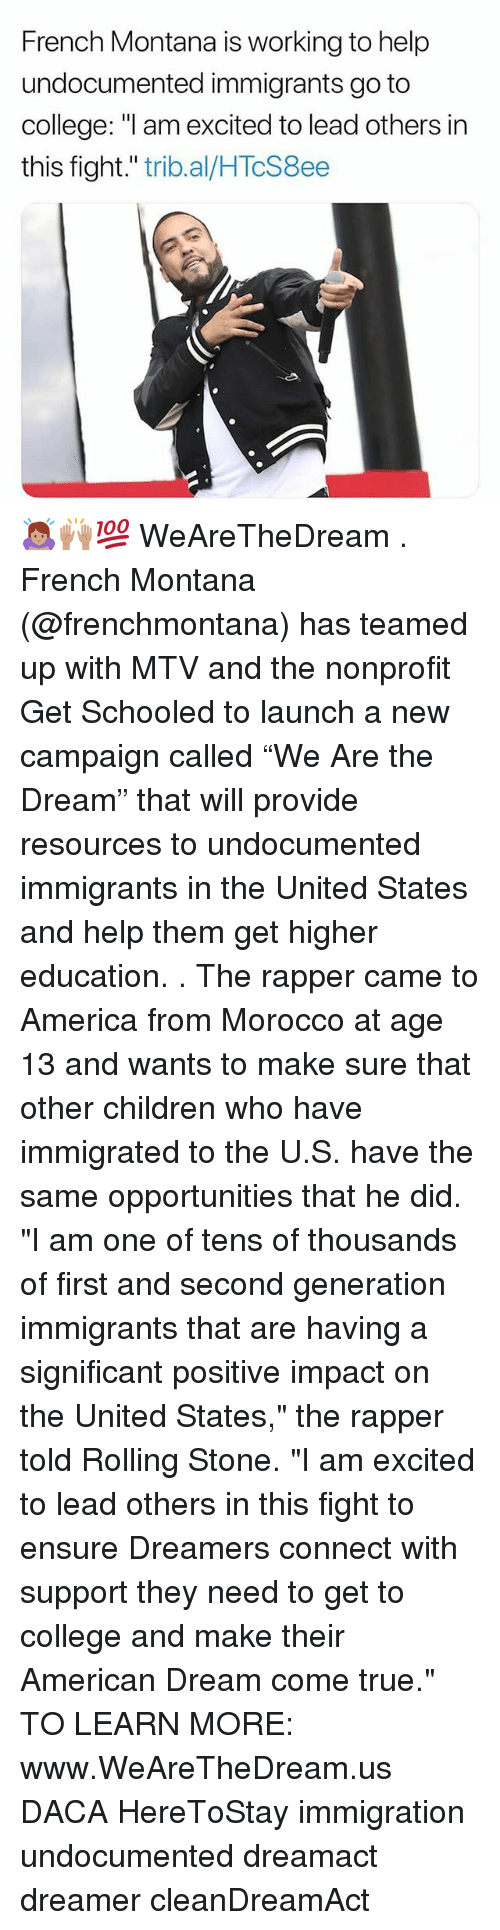 "schooled: French Montana is working to help  undocumented immigrants go to  college: ""l am excited to lead others in  this fight."" trib.al/HTcS8ee 🙇🏽‍♀️🙌🏽💯 WeAreTheDream . French Montana (@frenchmontana) has teamed up with MTV and the nonprofit Get Schooled to launch a new campaign called ""We Are the Dream"" that will provide resources to undocumented immigrants in the United States and help them get higher education. . The rapper came to America from Morocco at age 13 and wants to make sure that other children who have immigrated to the U.S. have the same opportunities that he did. ""I am one of tens of thousands of first and second generation immigrants that are having a significant positive impact on the United States,"" the rapper told Rolling Stone. ""I am excited to lead others in this fight to ensure Dreamers connect with support they need to get to college and make their American Dream come true."" TO LEARN MORE: www.WeAreTheDream.us DACA HereToStay immigration undocumented dreamact dreamer cleanDreamAct"